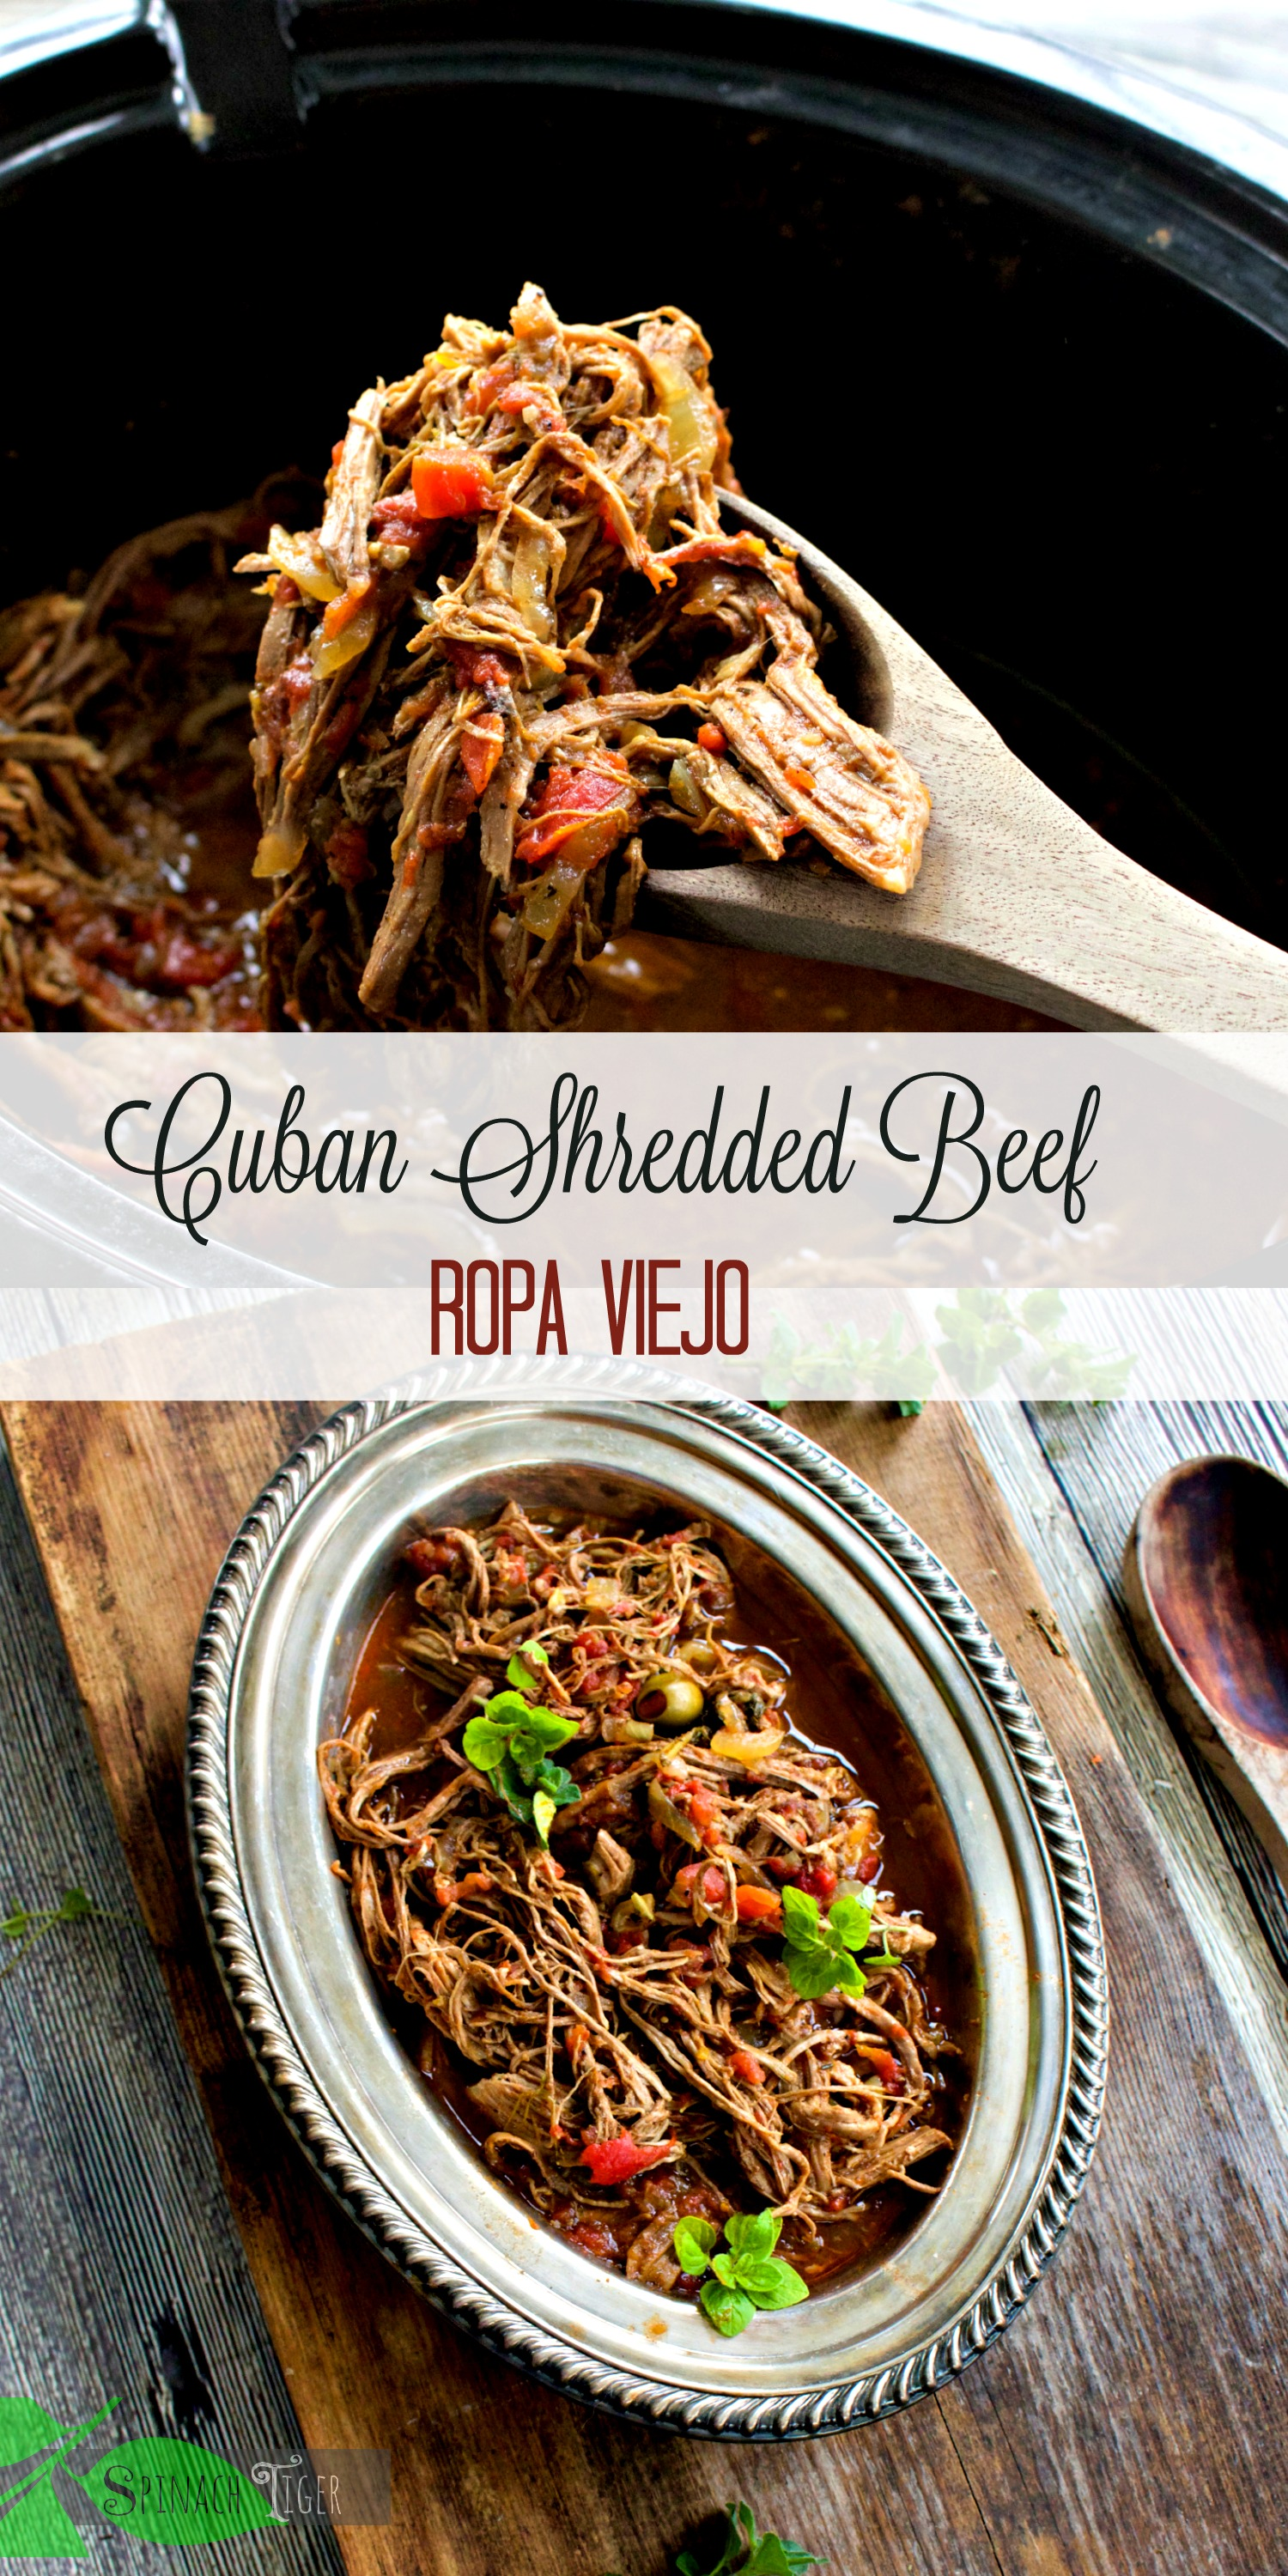 Crockpot Ropa Viejo, Shredded Cuban Beef, from Spinach Tiger